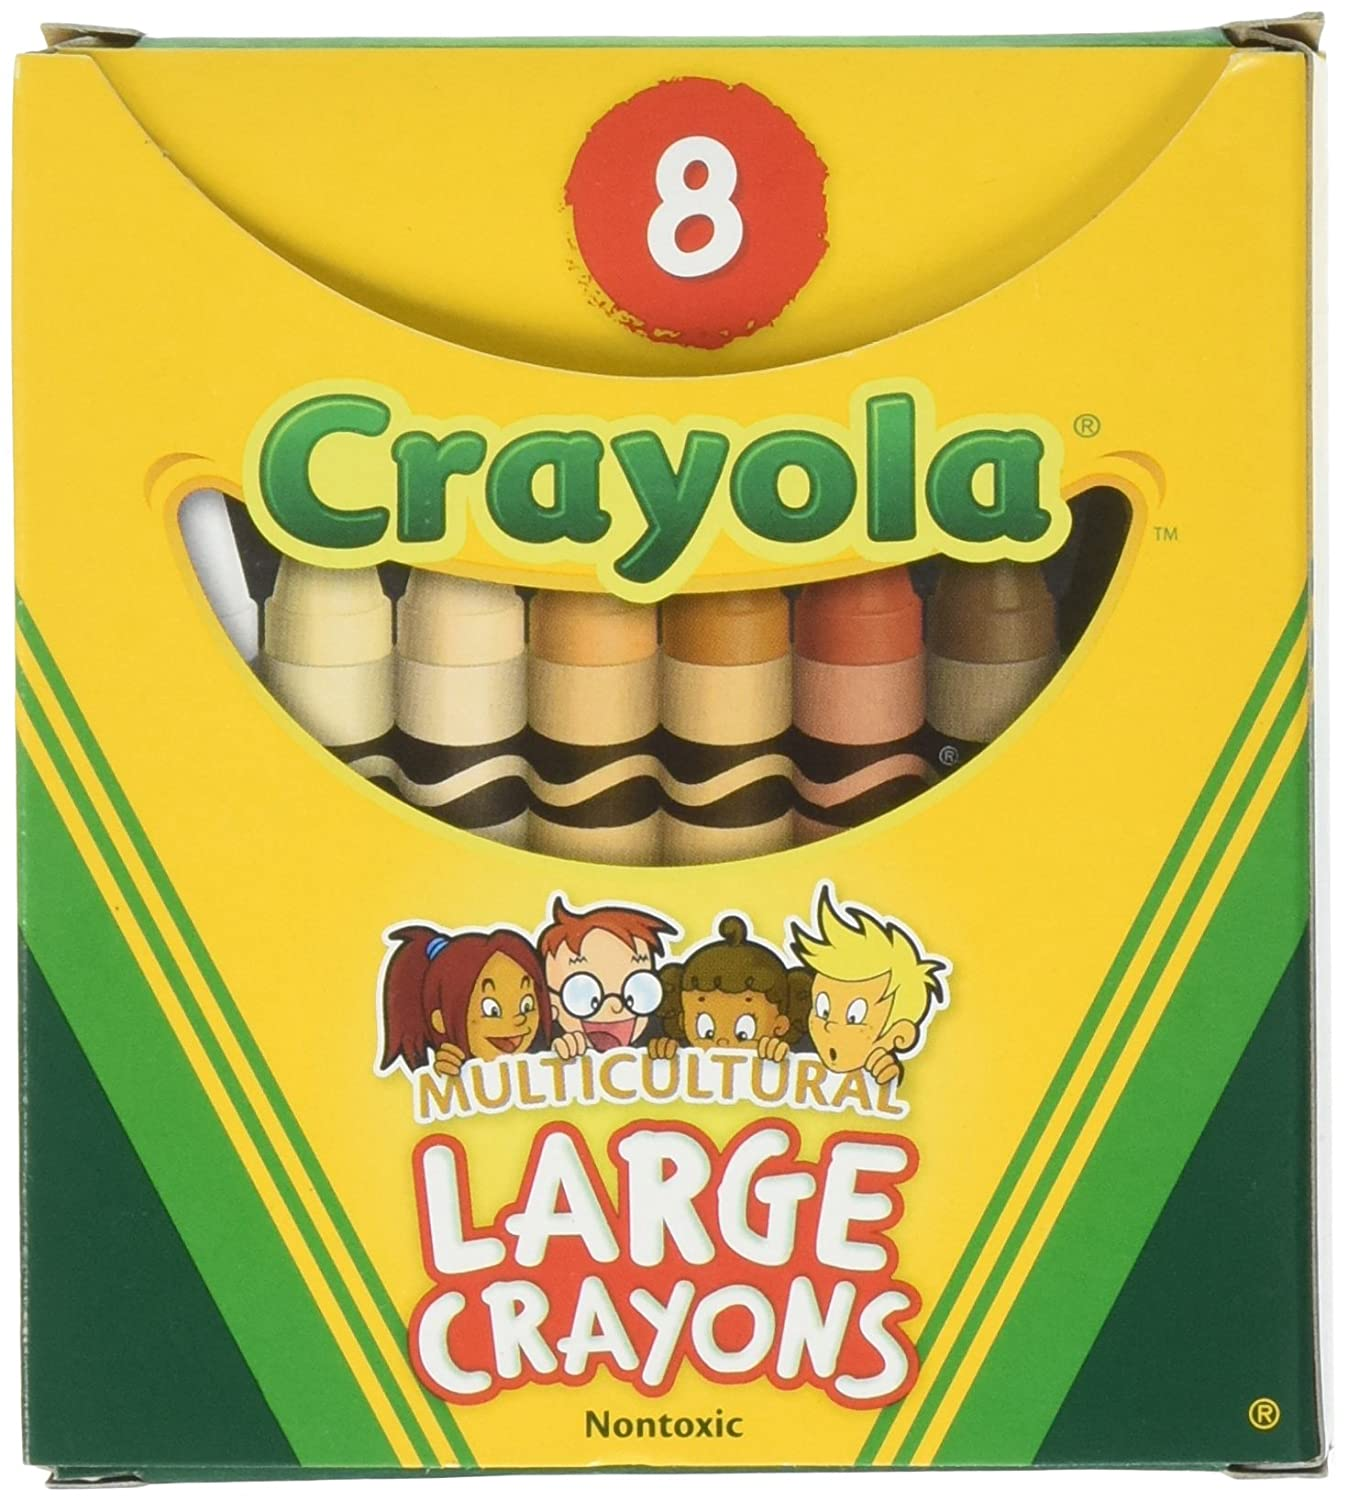 Binney & Smith Crayola(R) Multicultural Large Crayons, Assorted Specialty Colors, Box Of 8 52-080W